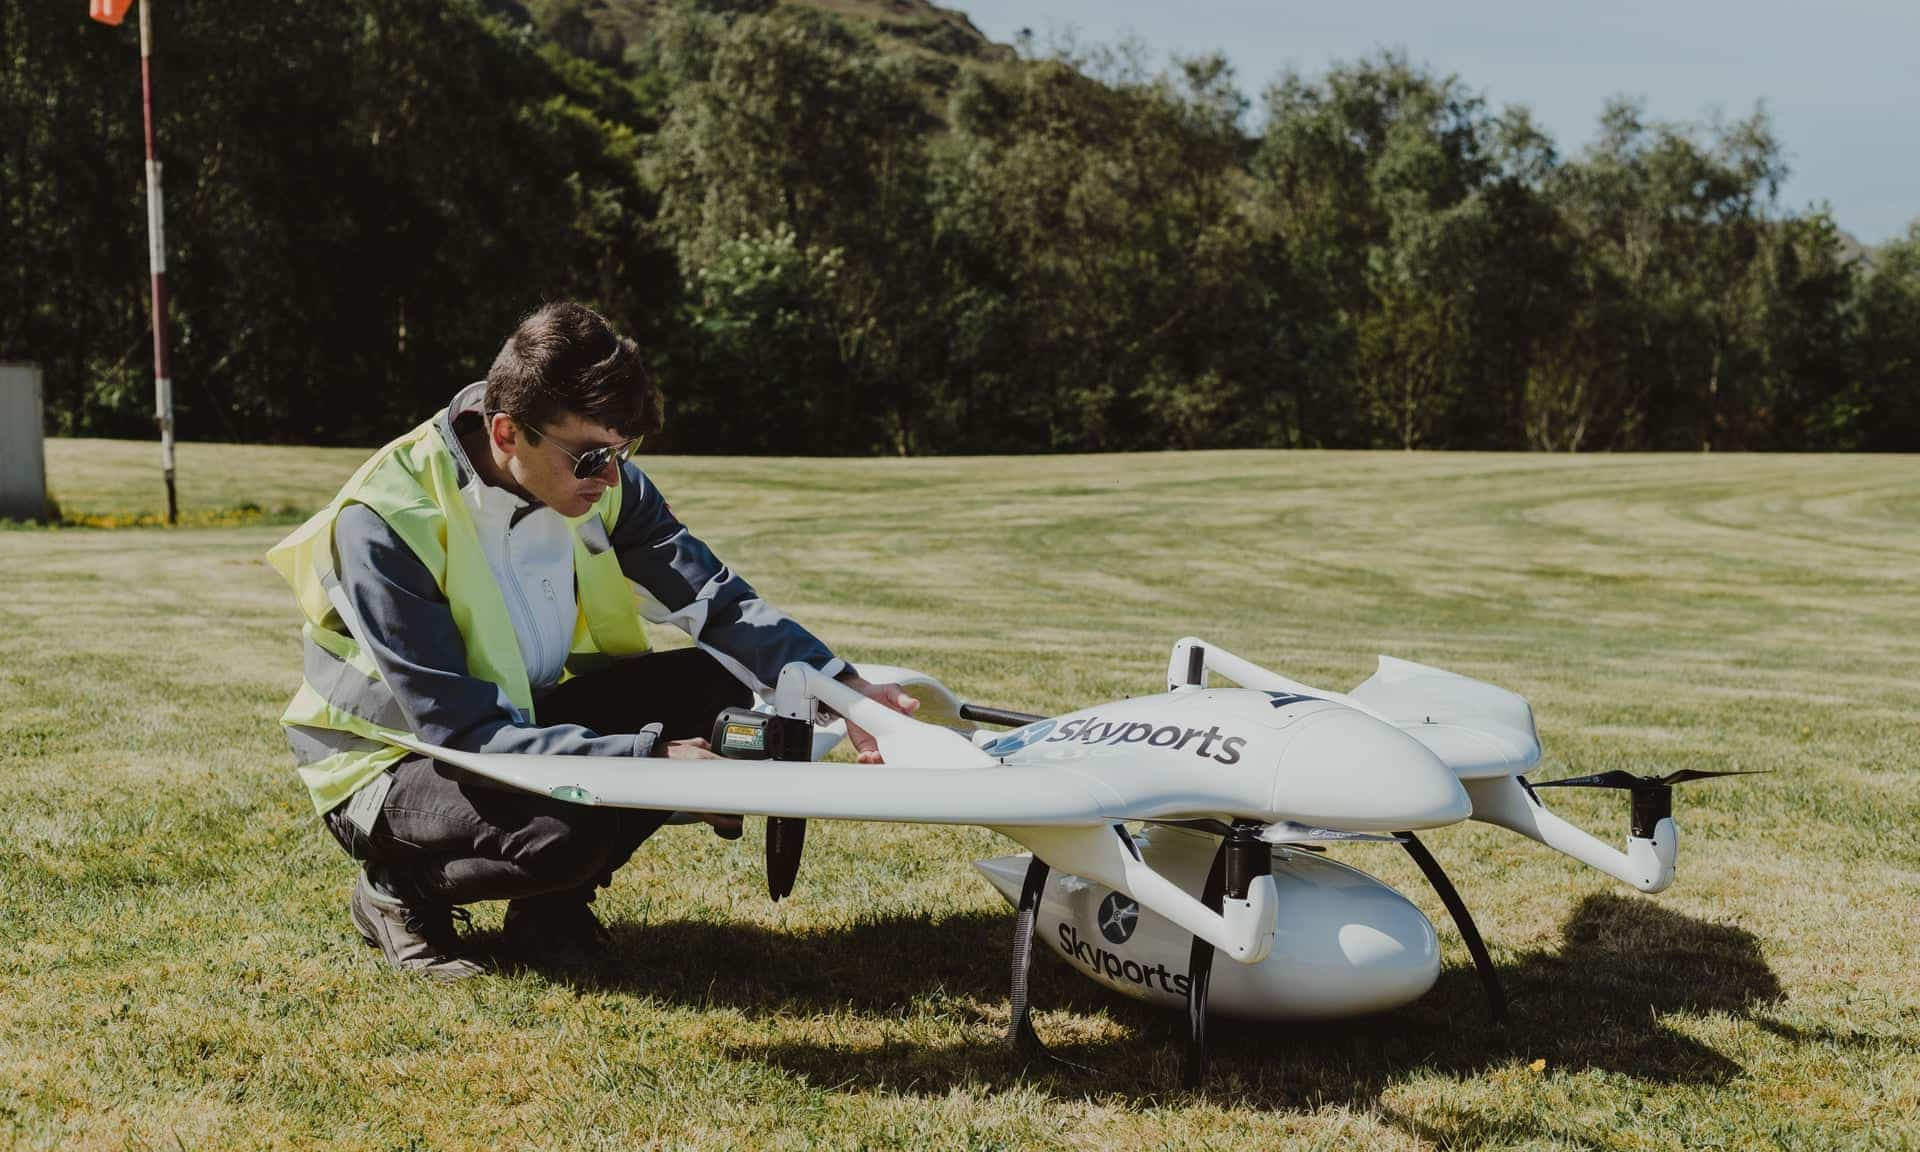 Drone deliveries take off in Scotland during coronavirus outbreak